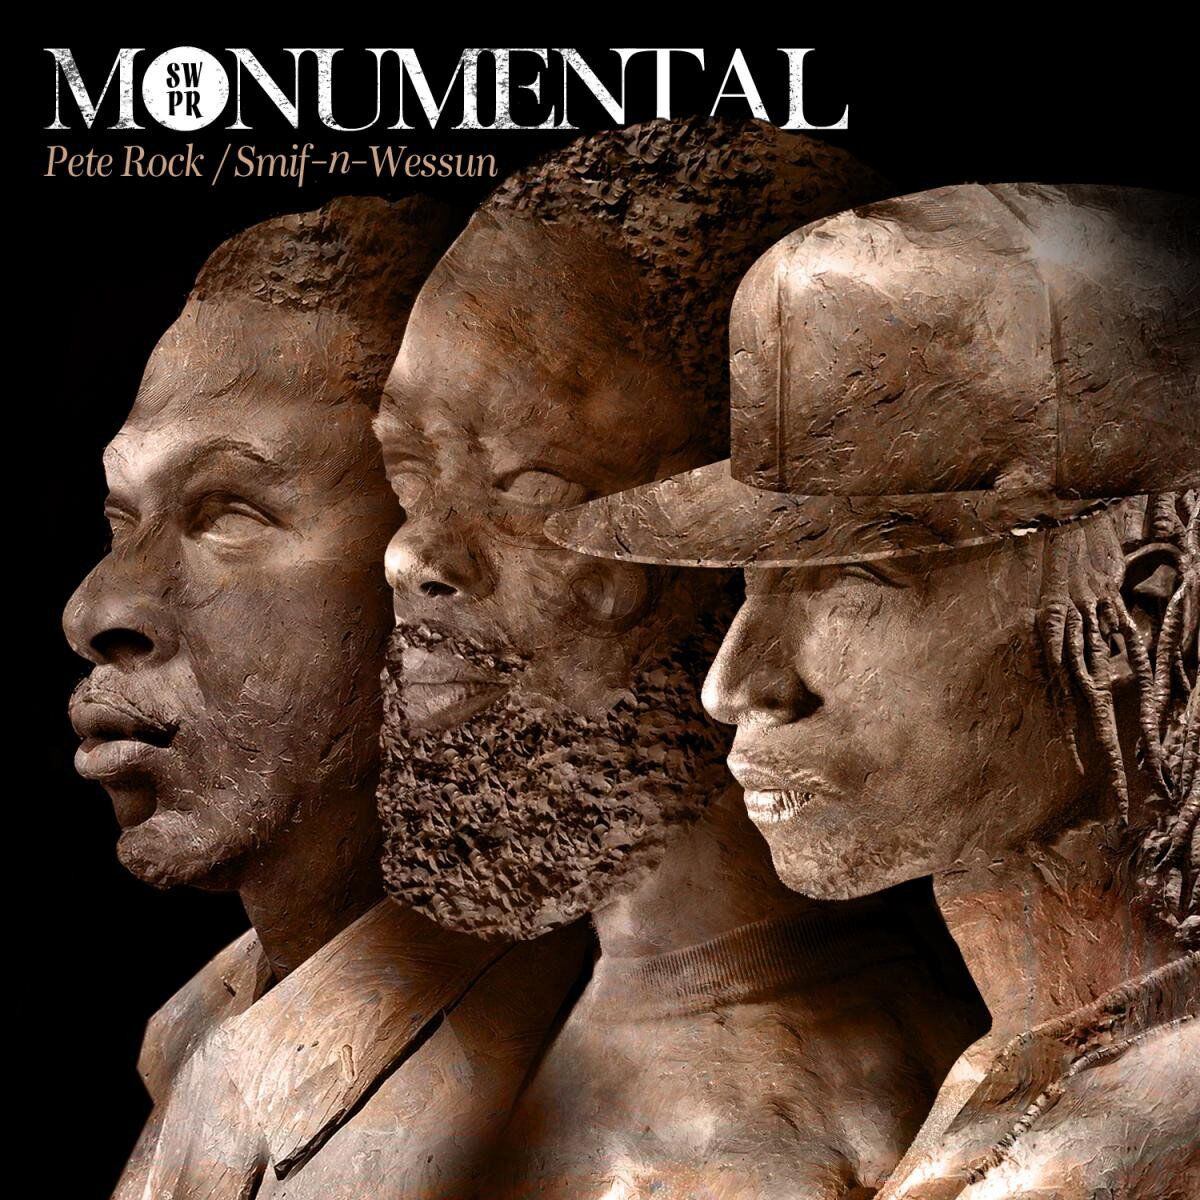 Pete Rock & Smif N Wessun - Monumental CD